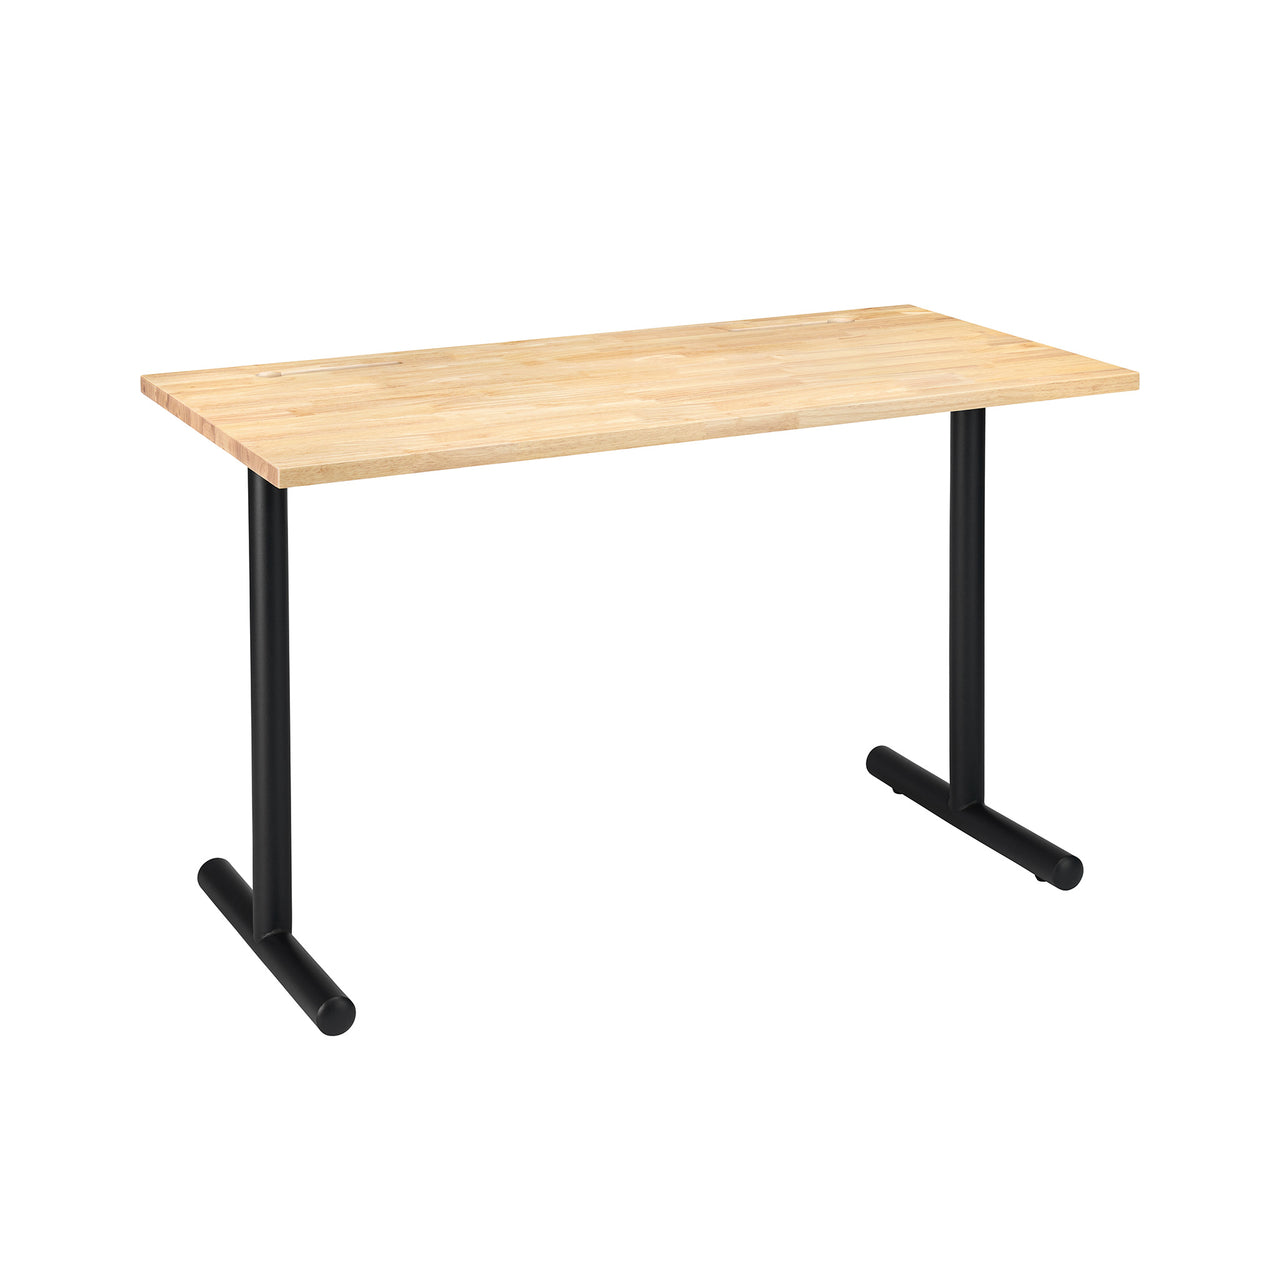 Lenox Desk (Light Oak)